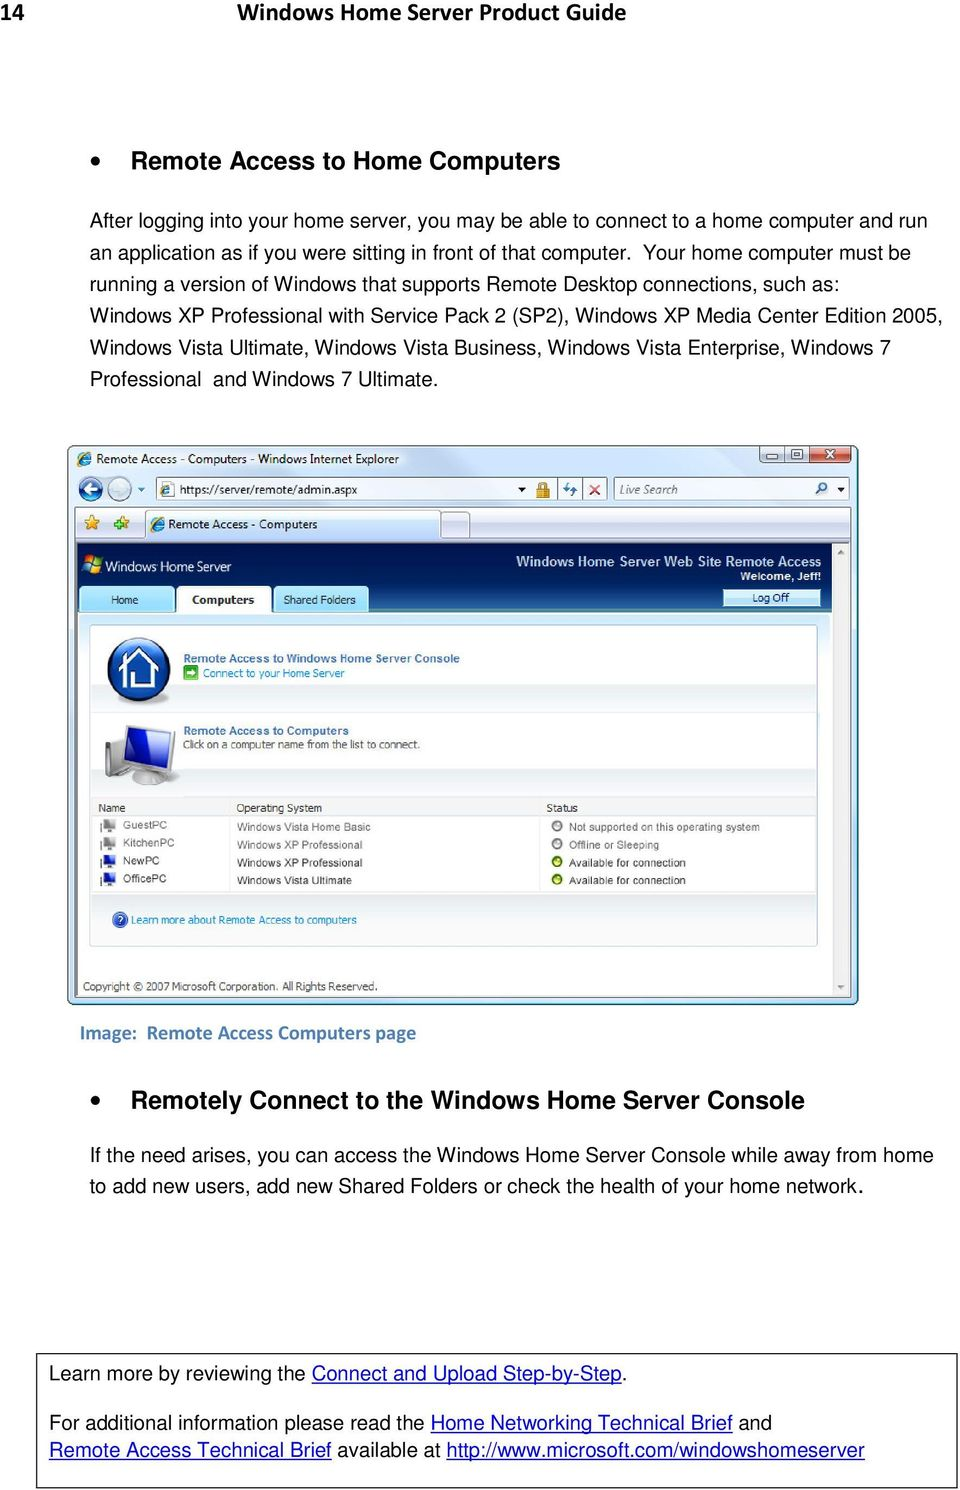 Your home computer must be running a version of Windows that supports Remote Desktop connections, such as: Windows XP Professional with Service Pack 2 (SP2), Windows XP Media Center Edition 2005,